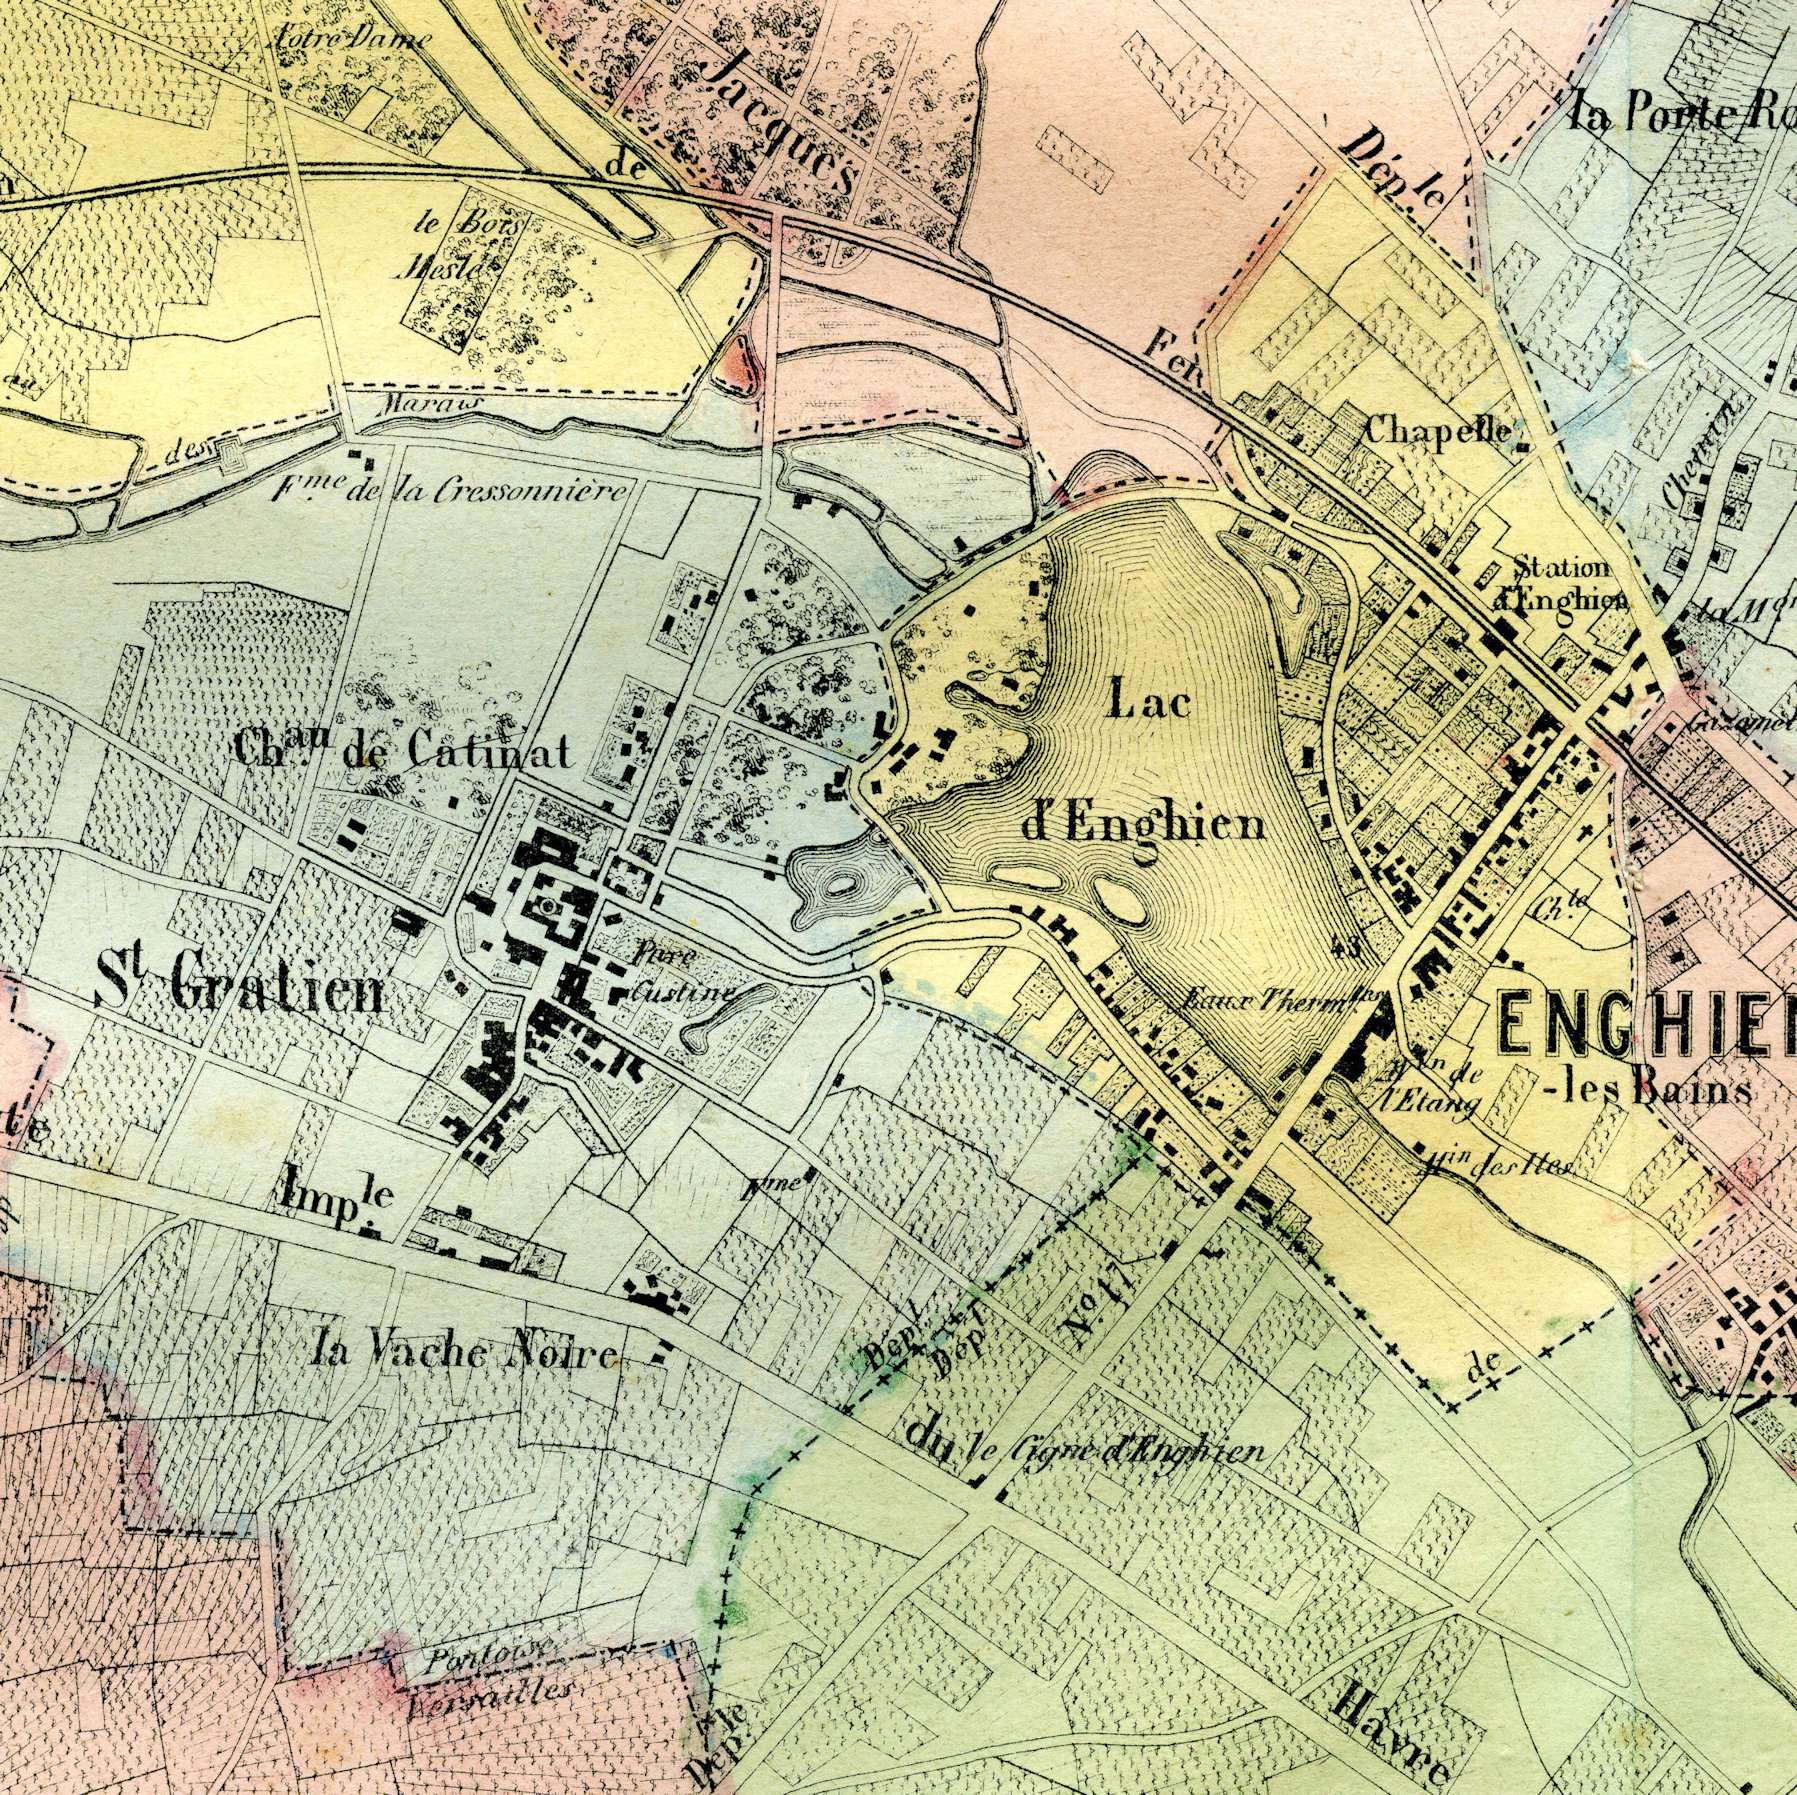 1860 Enghien Barba detail